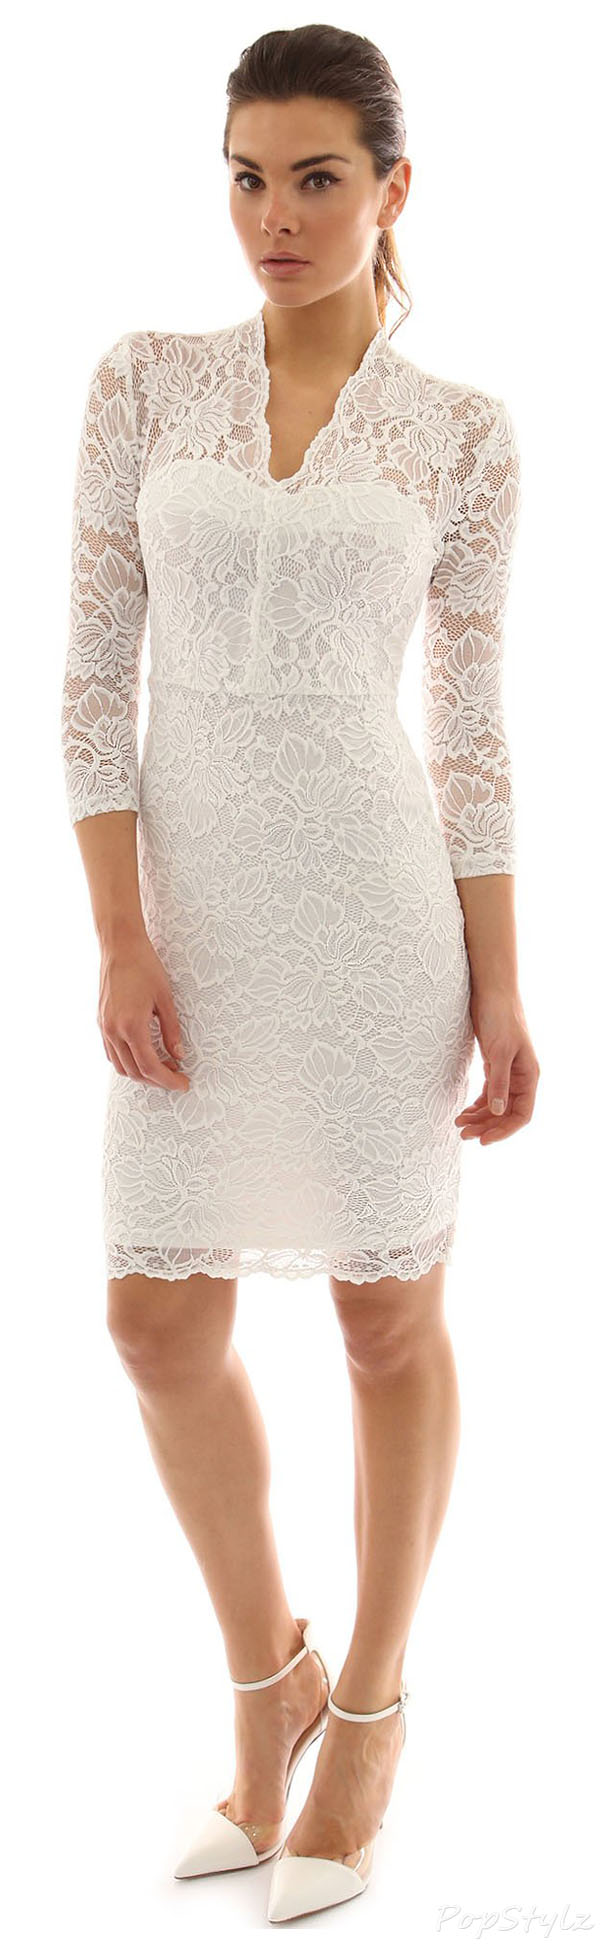 PattyBoutik 3/4 Sleeve Lace Overlay Sheath Dress